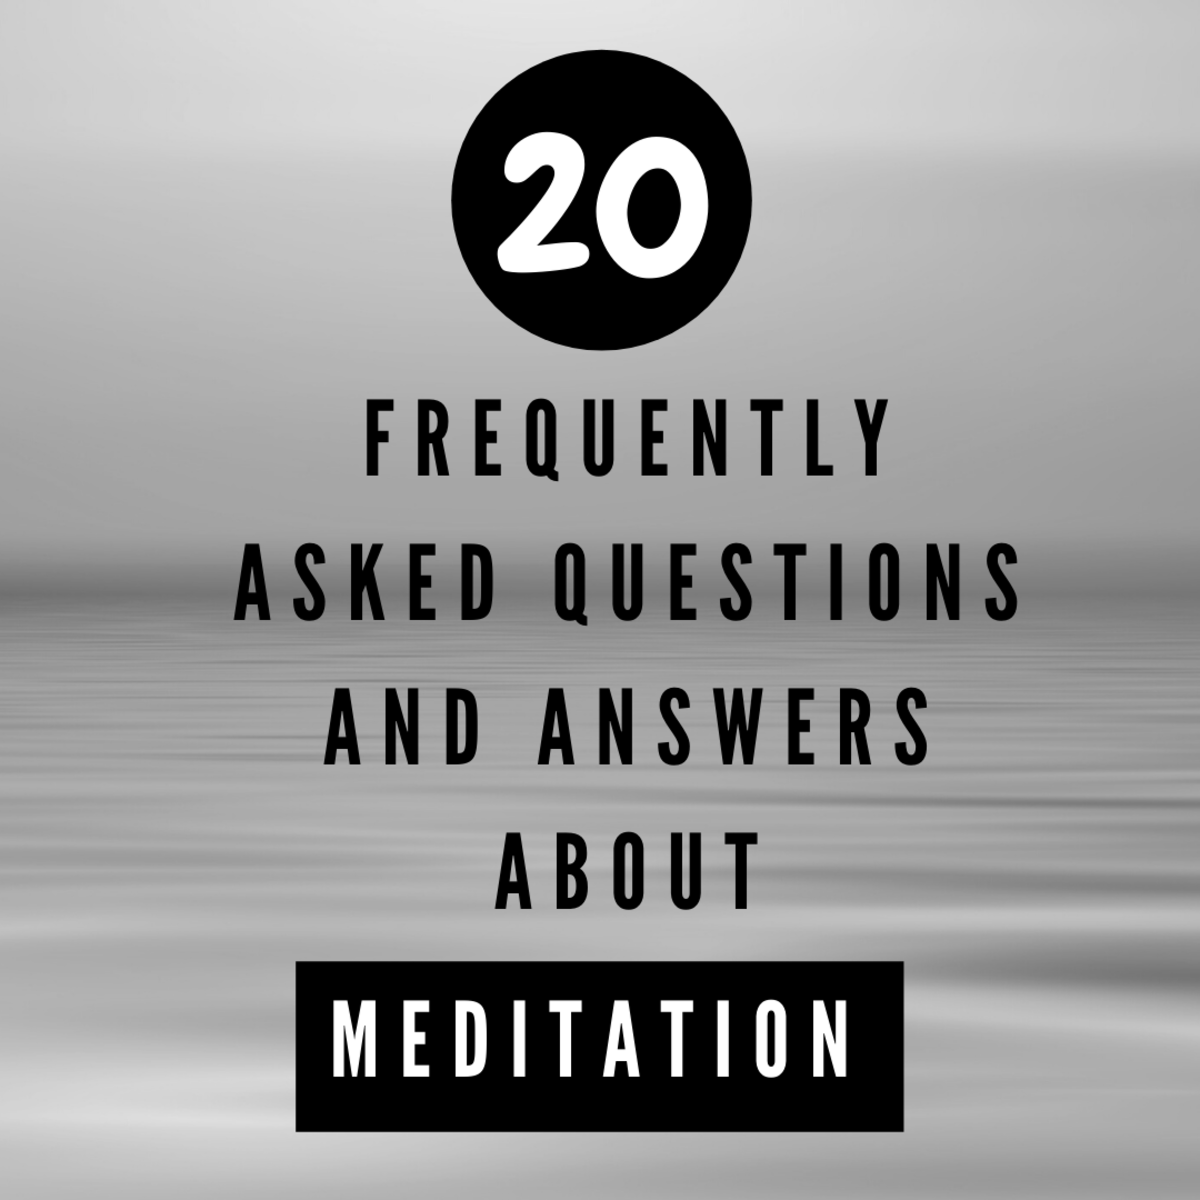 Frequently asked meditation questions and their answers